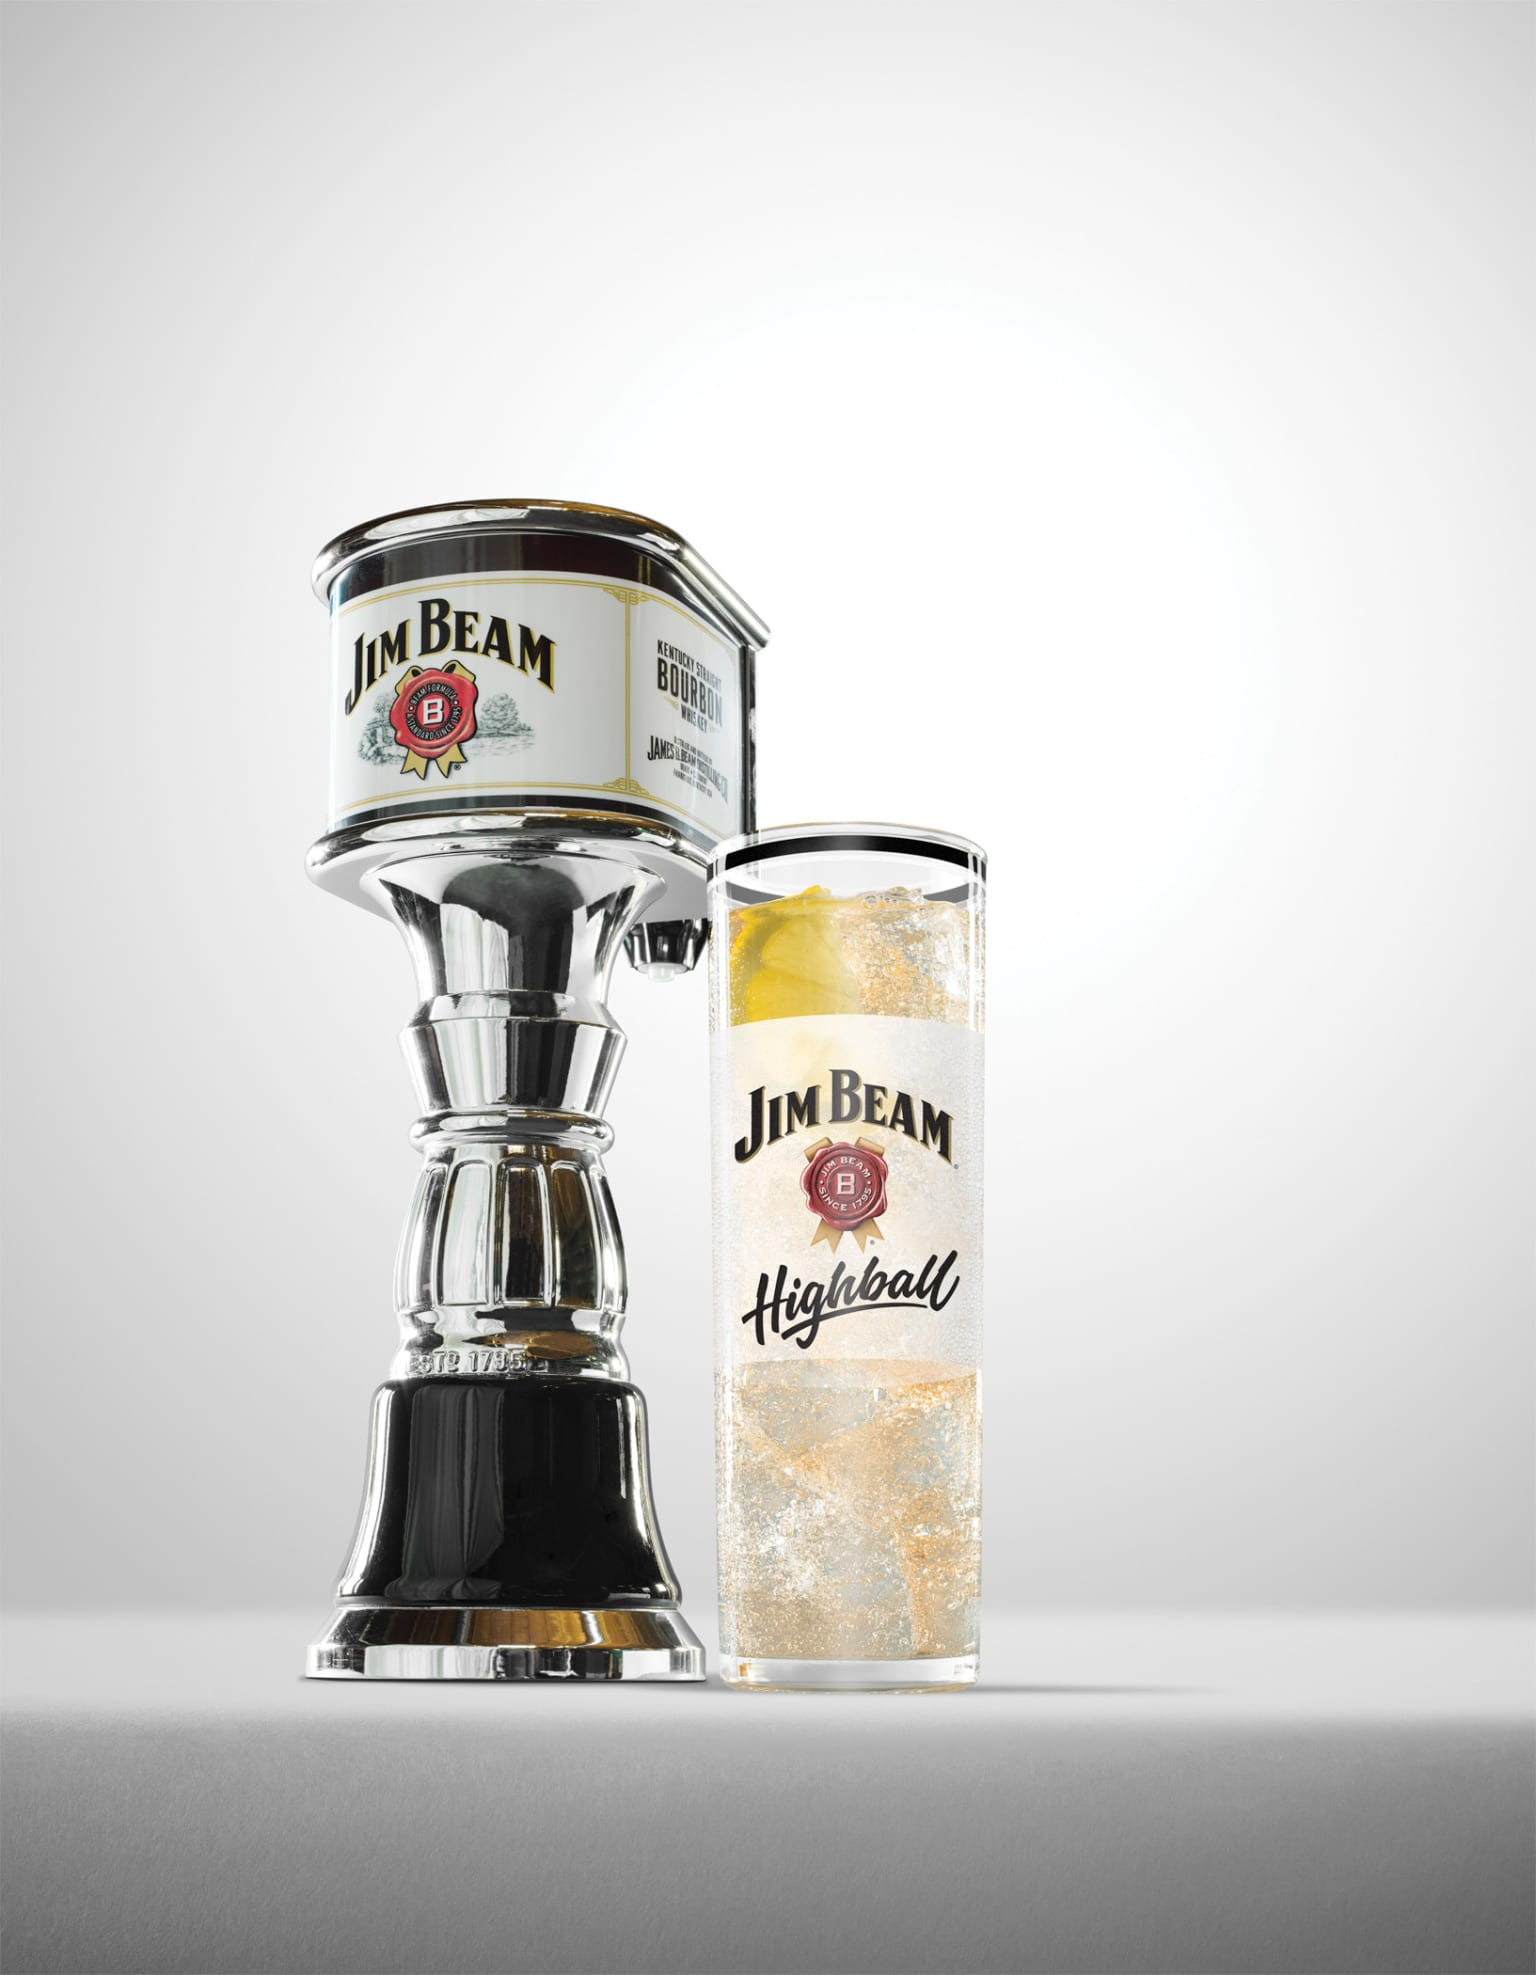 Jim Beam - Glassware Design